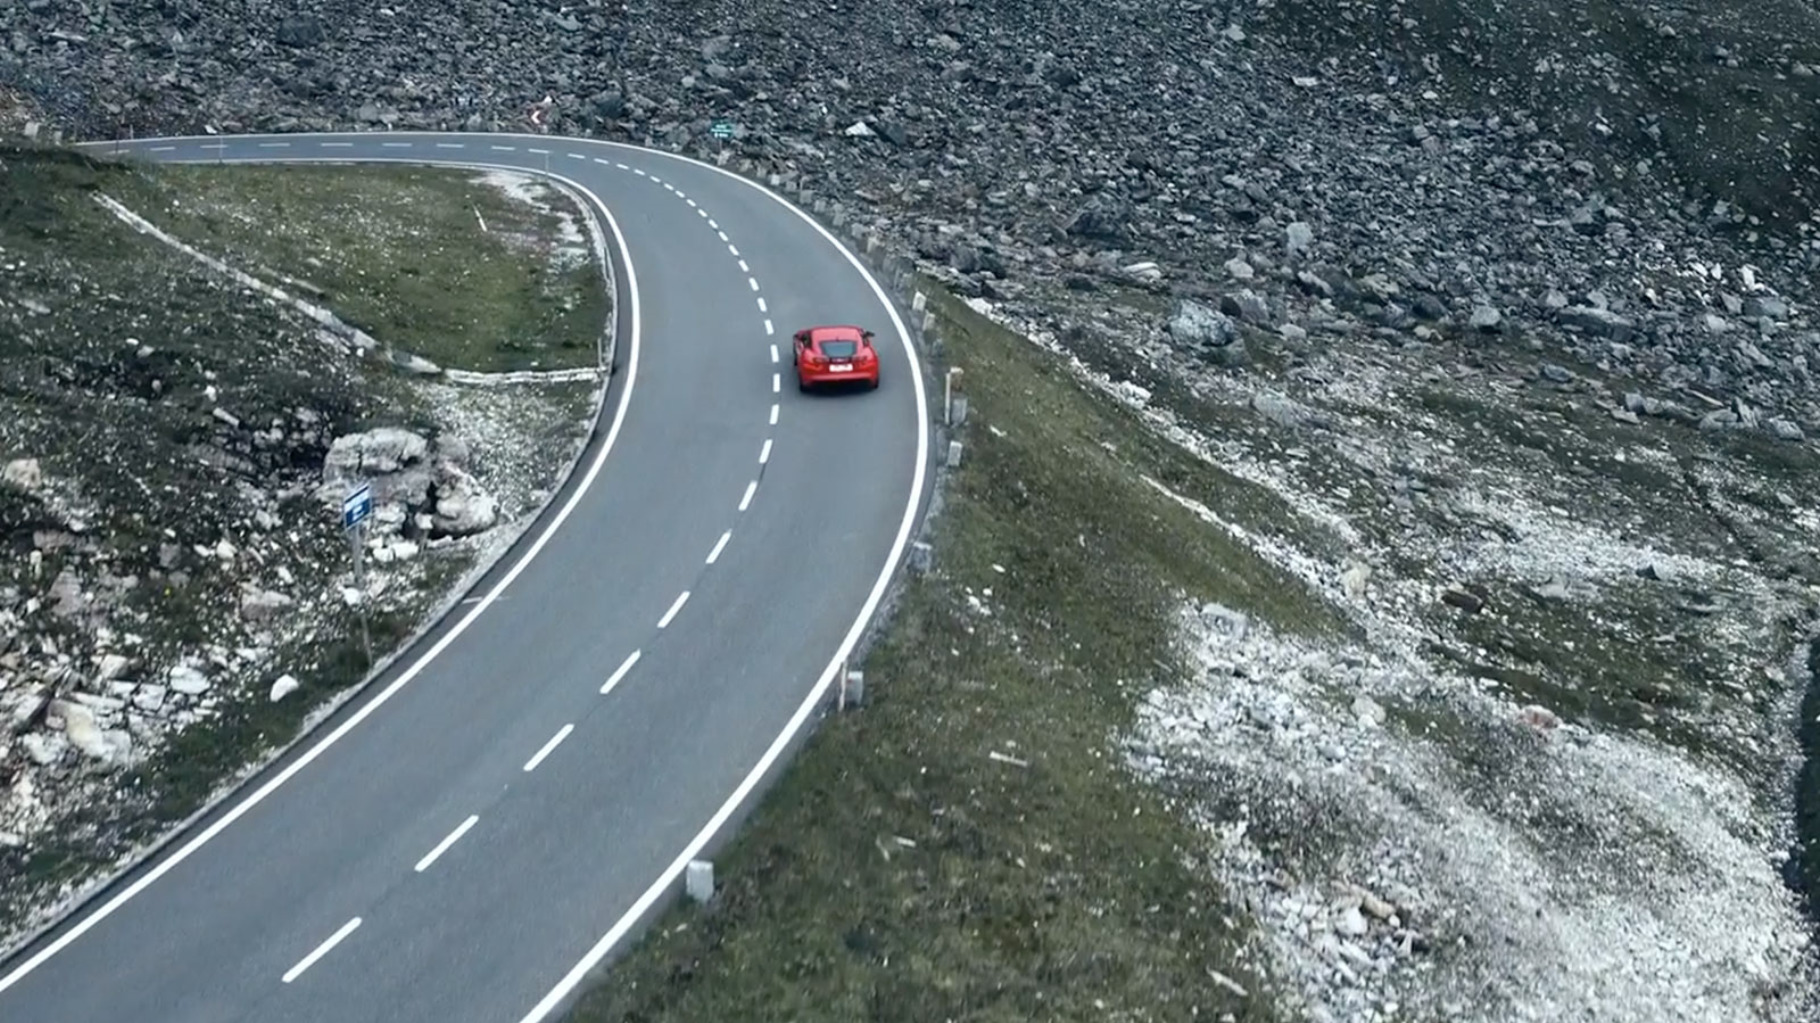 A jaguar f-type driving along a curved road in the mountains.